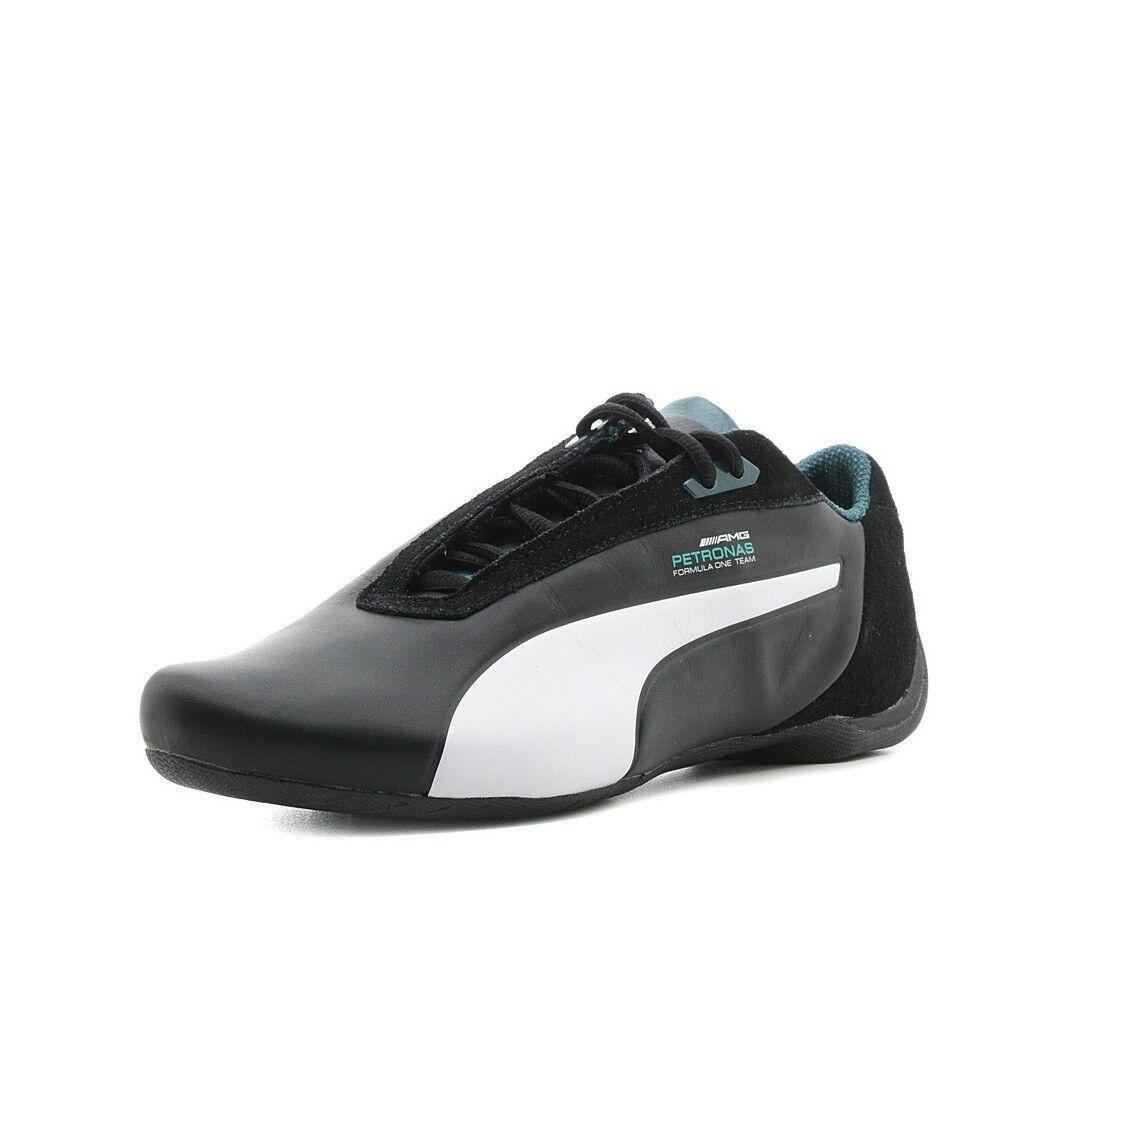 Puma MANGP FUTURE CAT s2 MERCEDES